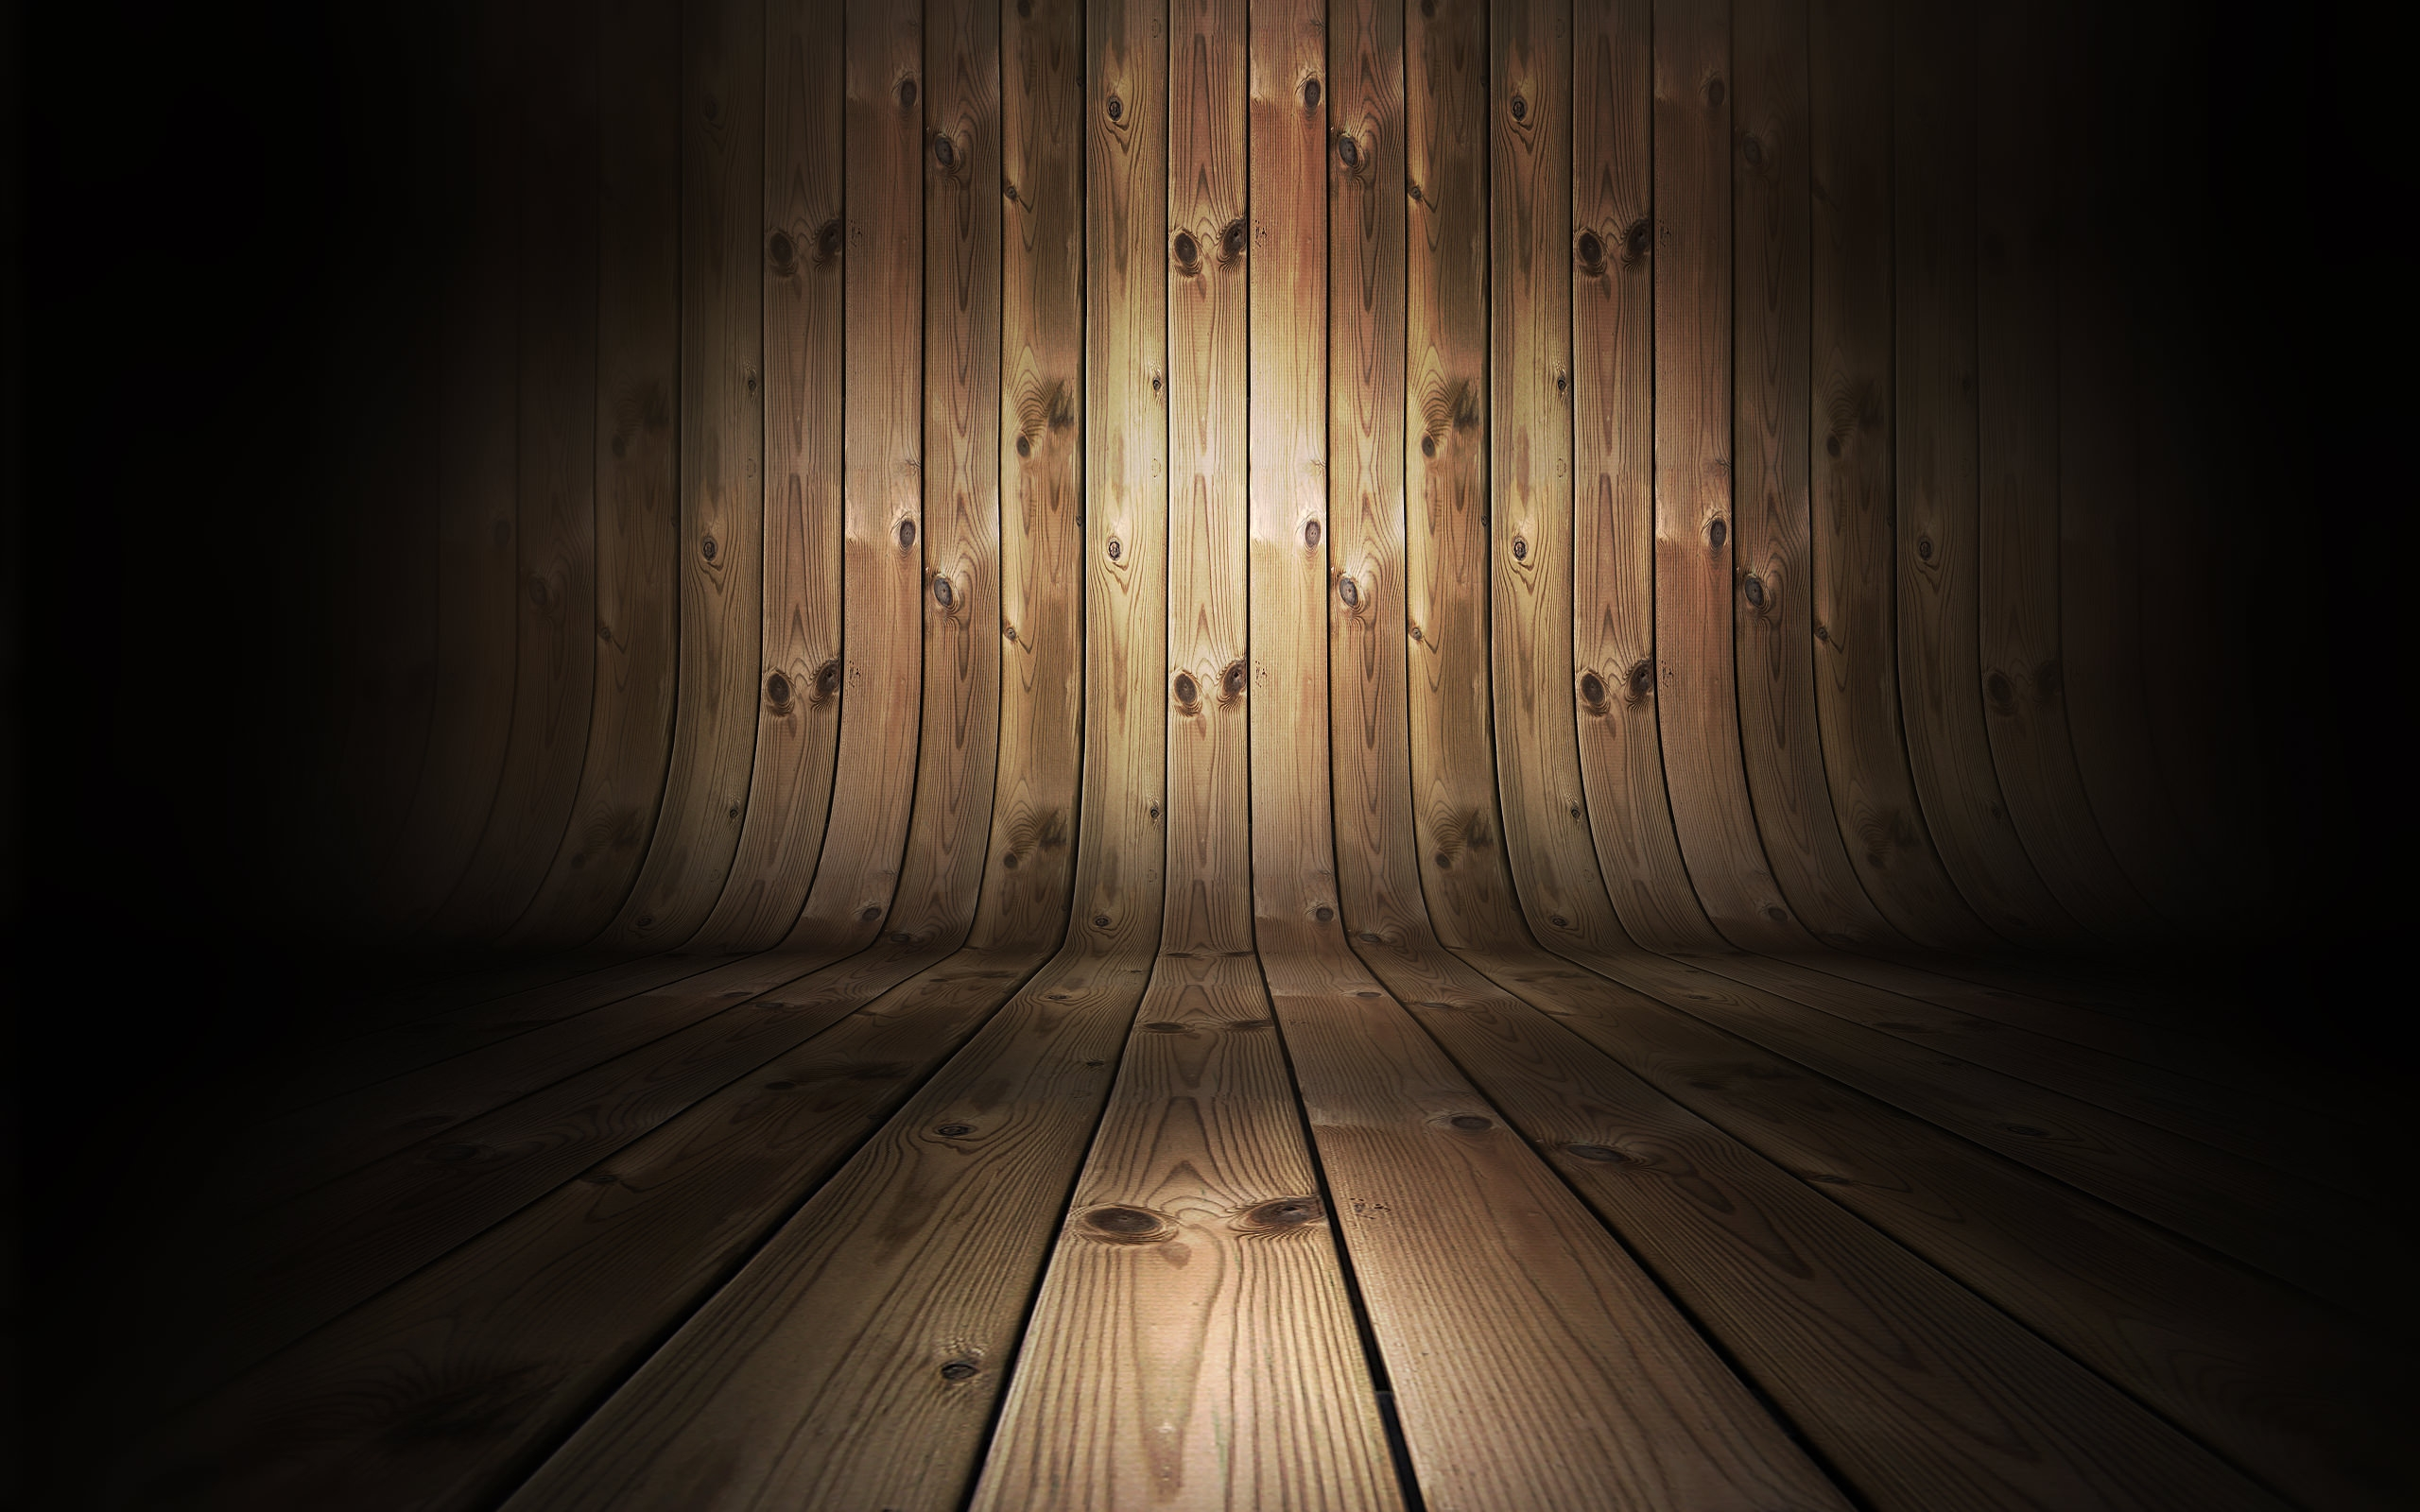 Wooden backgrounds hd 74 wallpapers hd wallpapers for Wood wallpaper for walls